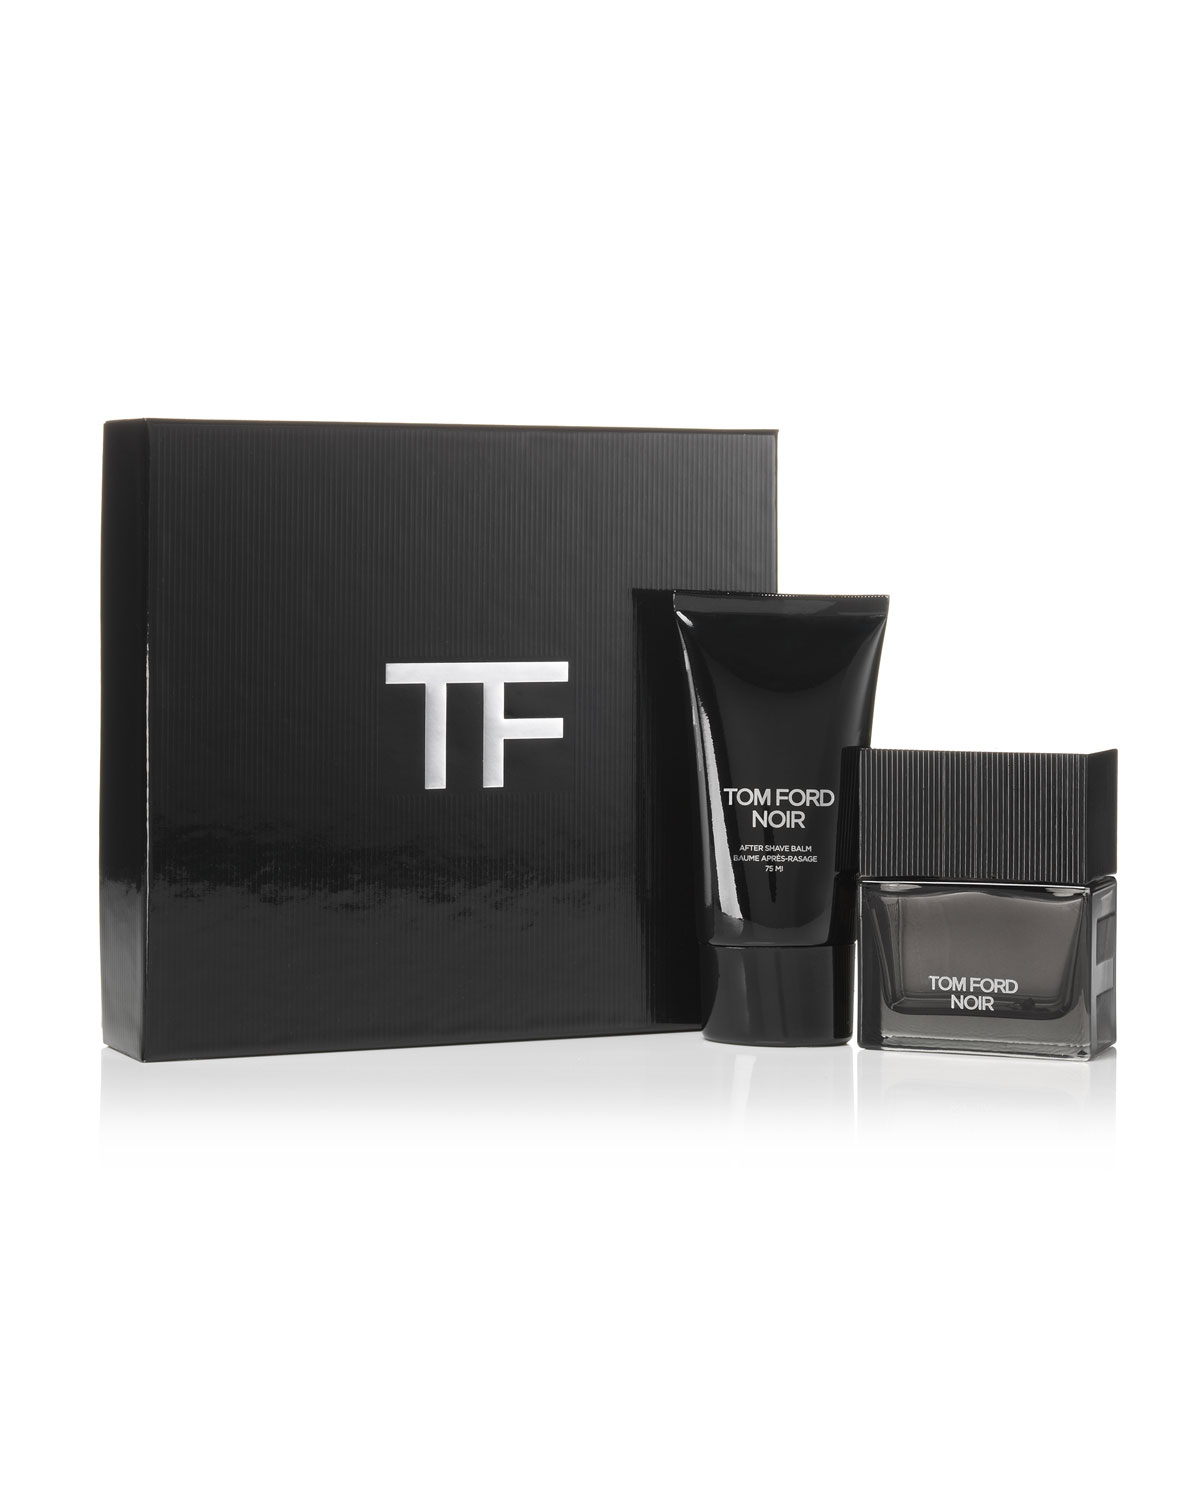 Tom Ford Noir Set buy HERE